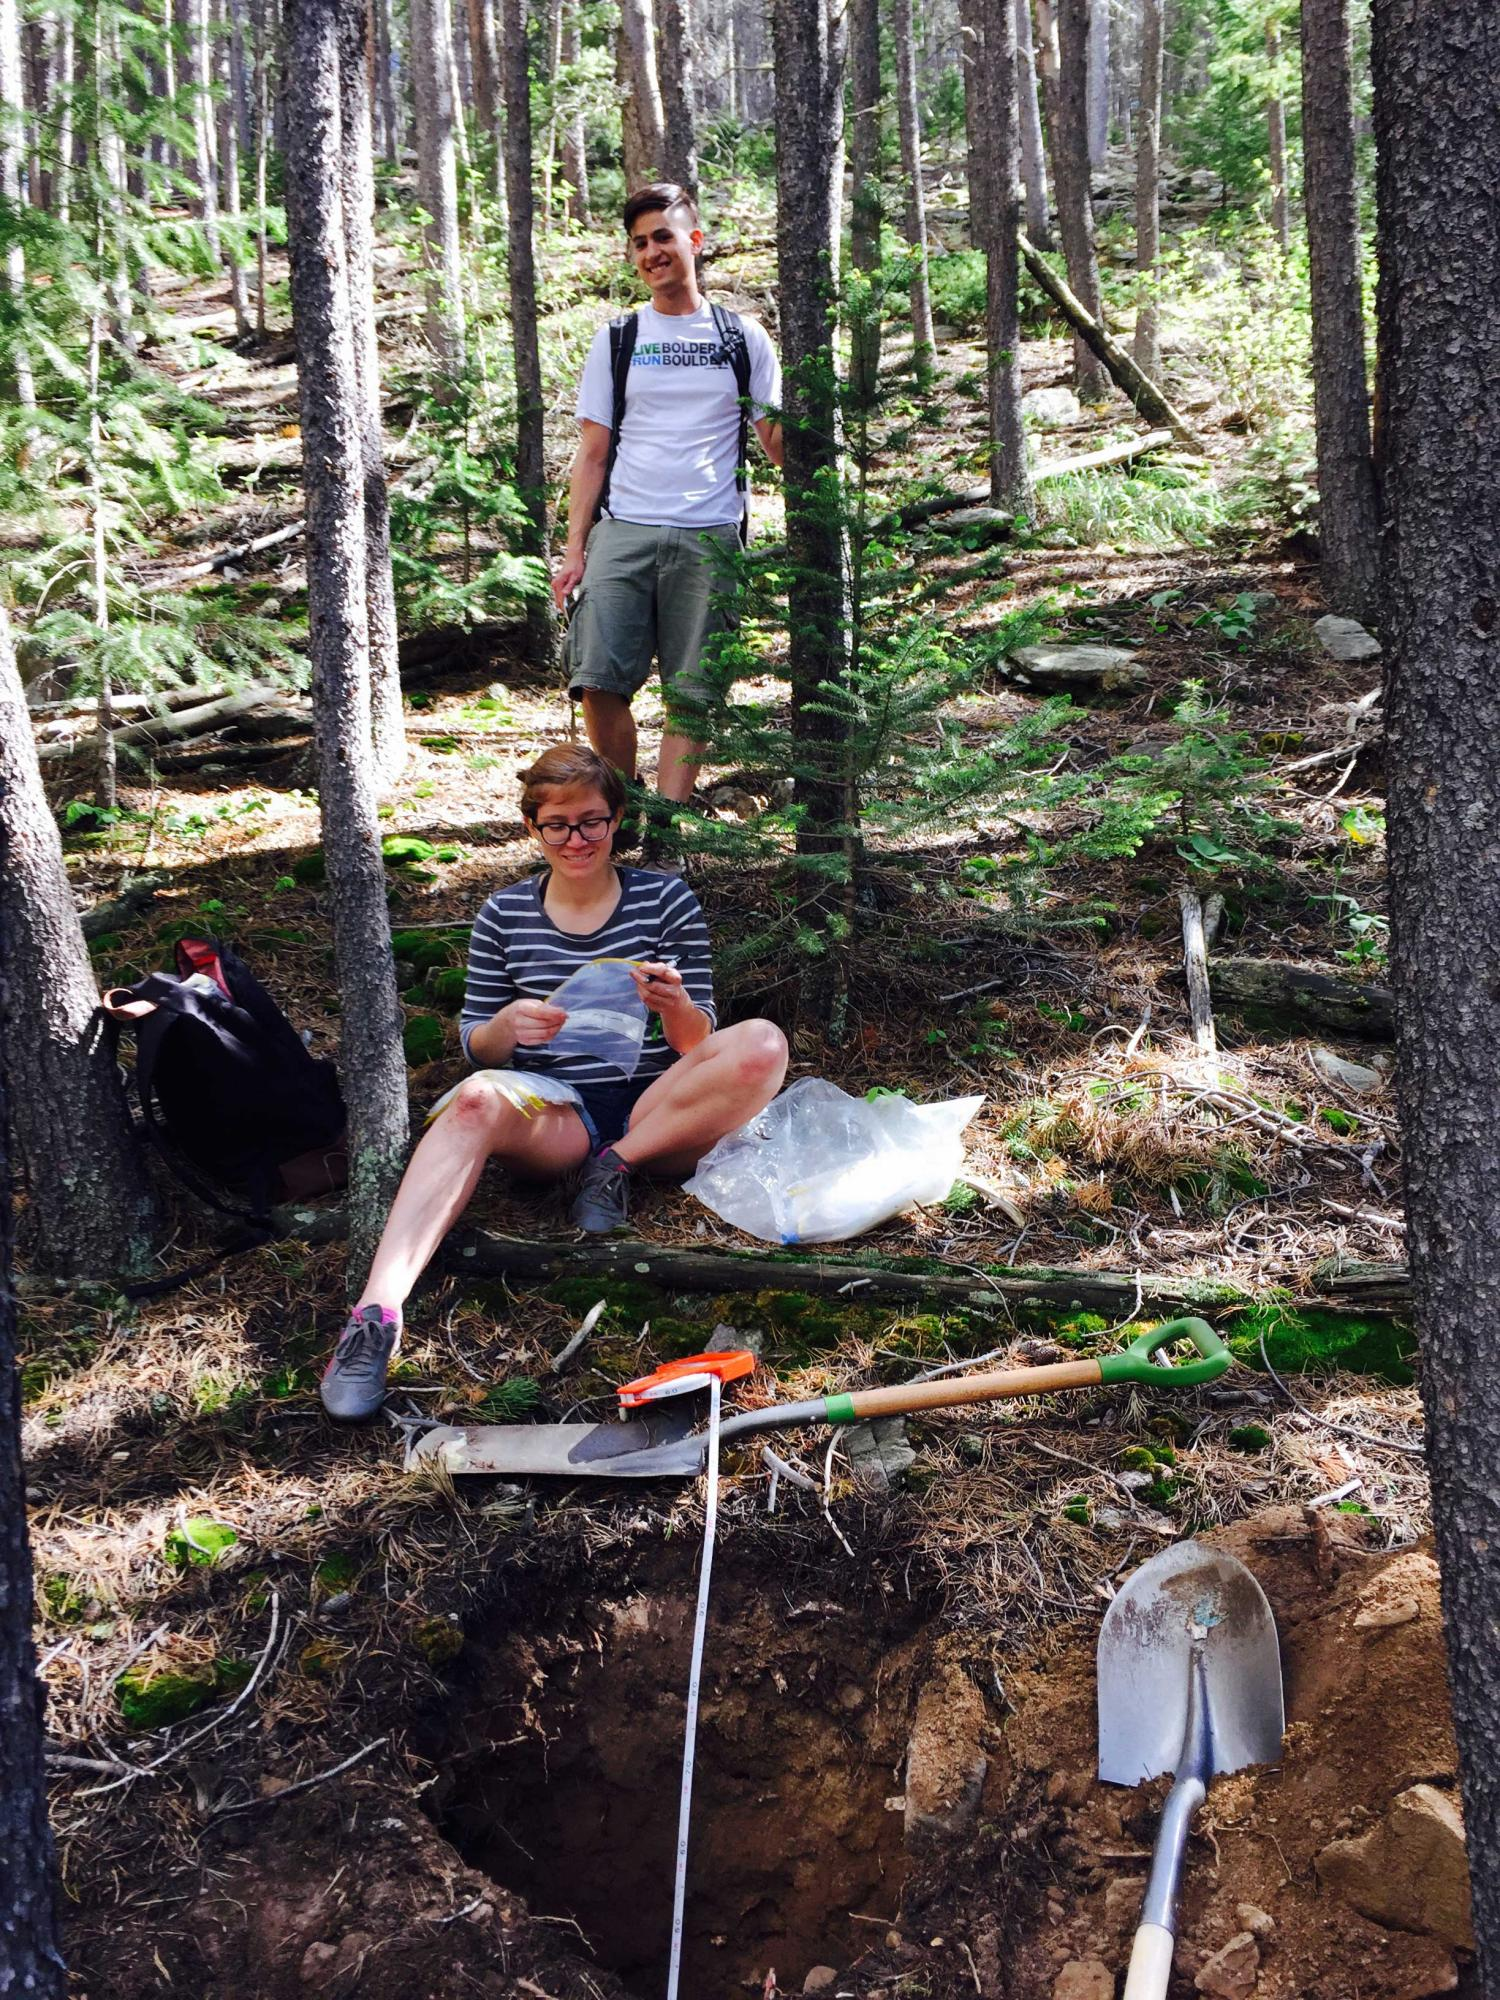 Scott-Wesley Bean and another student conducting research in the mountains